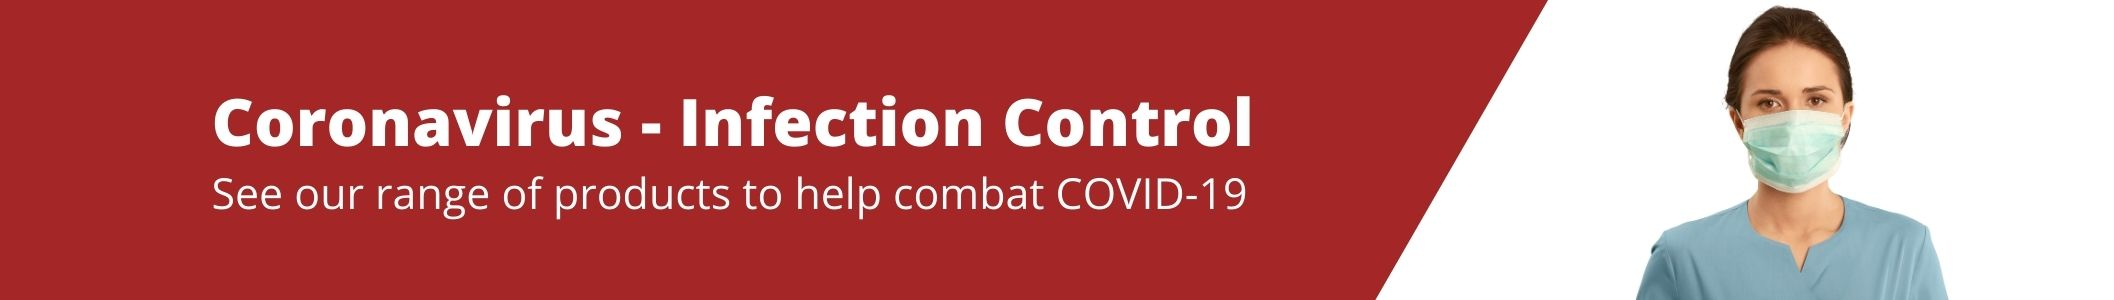 Coronavirus Infection Control